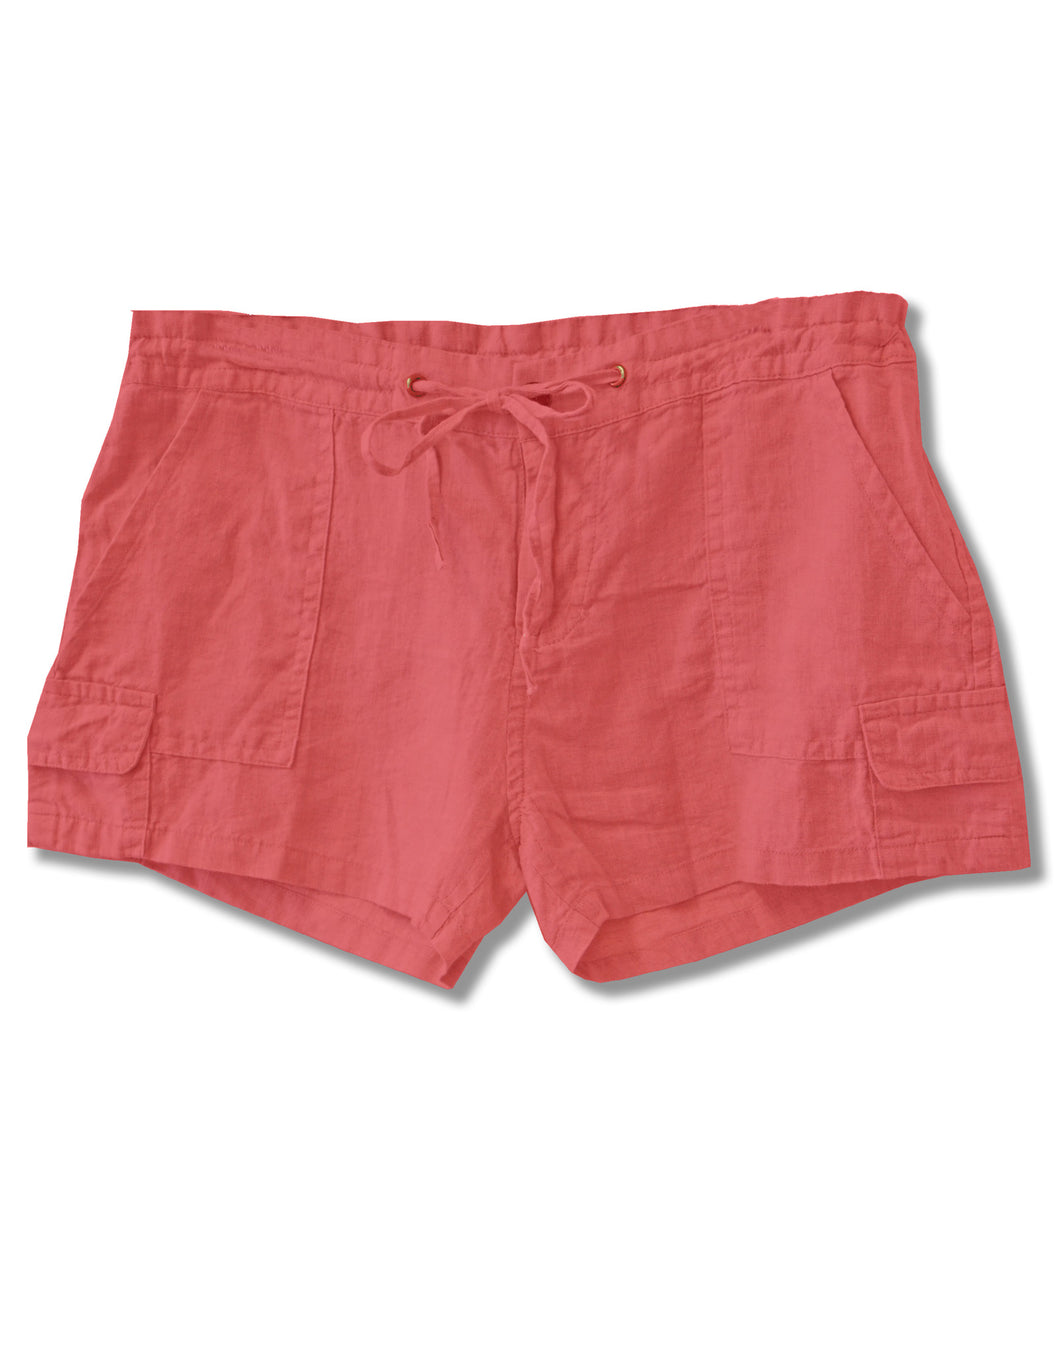 Linen Drawstring Cargo Shorts | Coral - 4our Dreamers